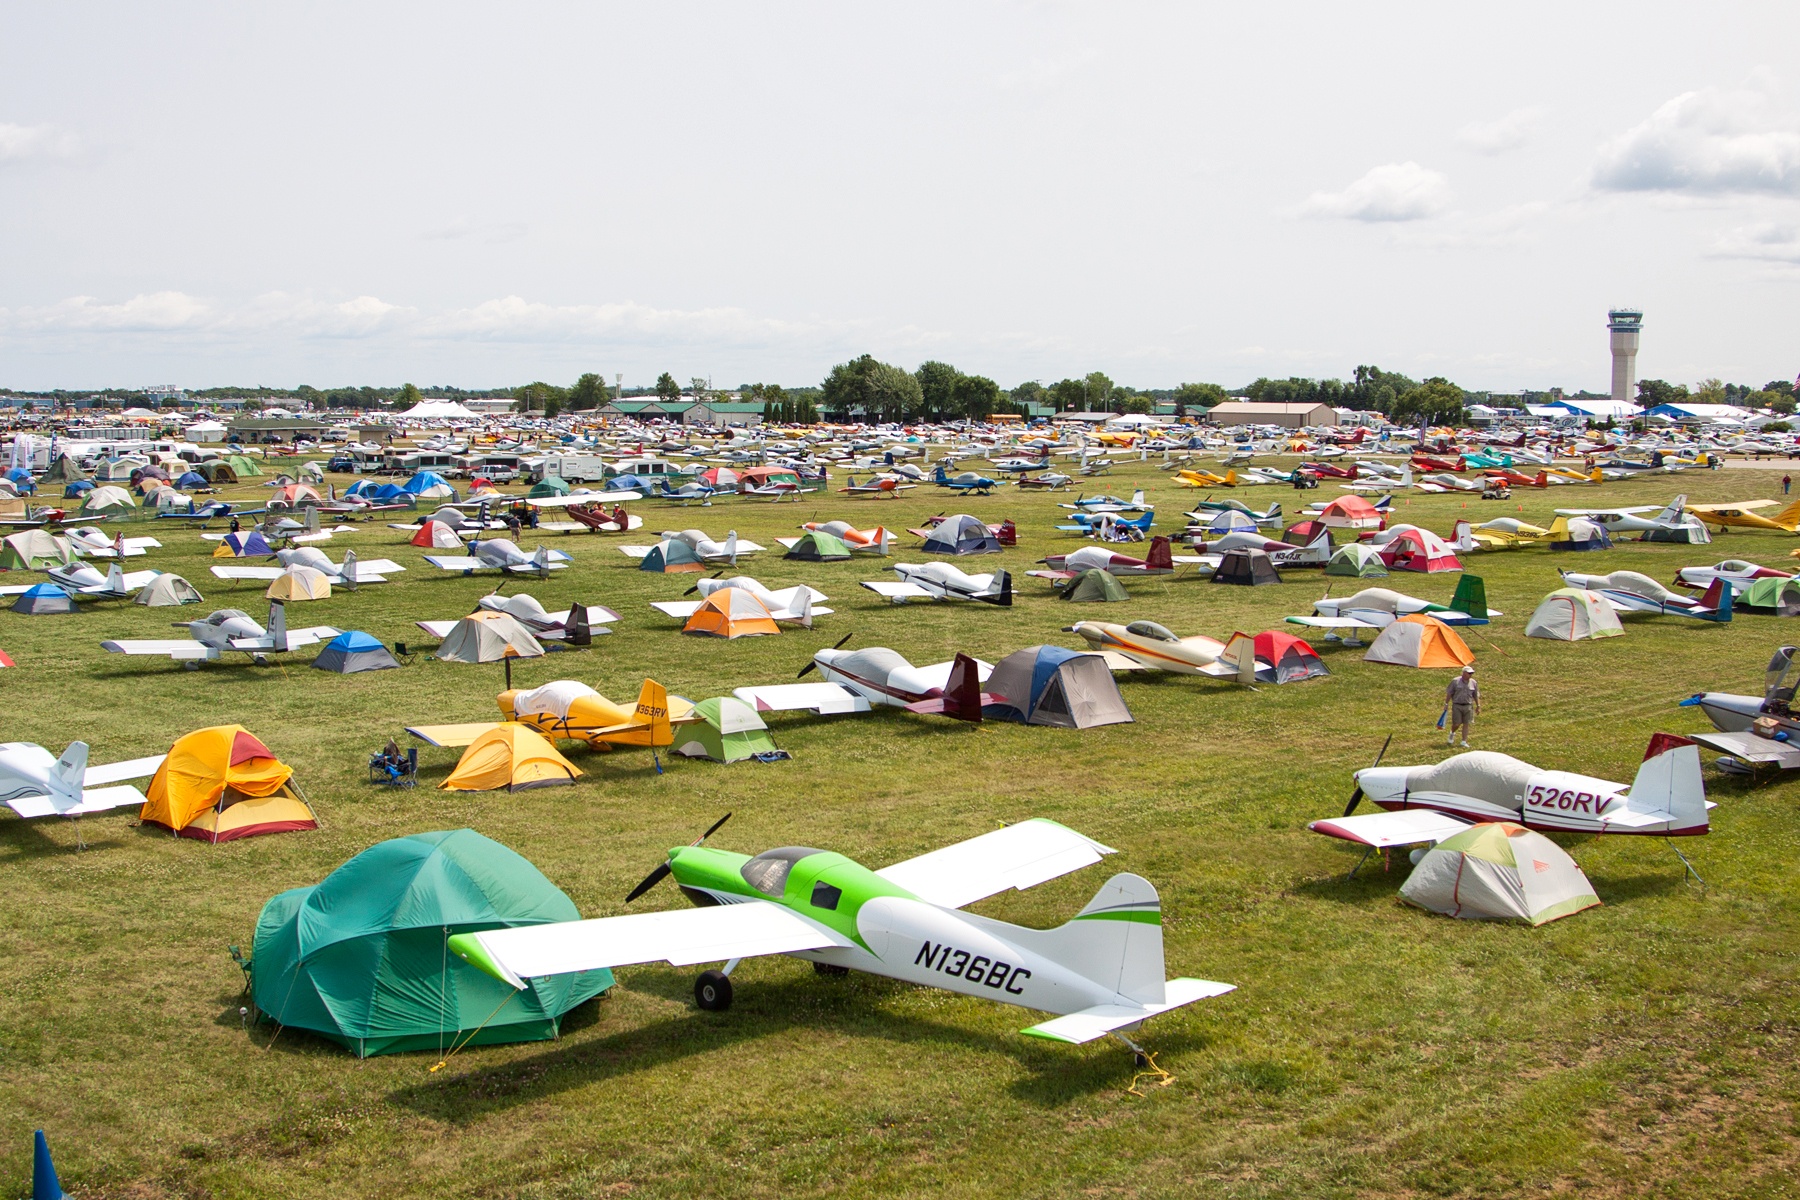 Homebuilt%20aircraft%20camping%204085 Auctions is often a goldmine when looking for affordable put vehicles.